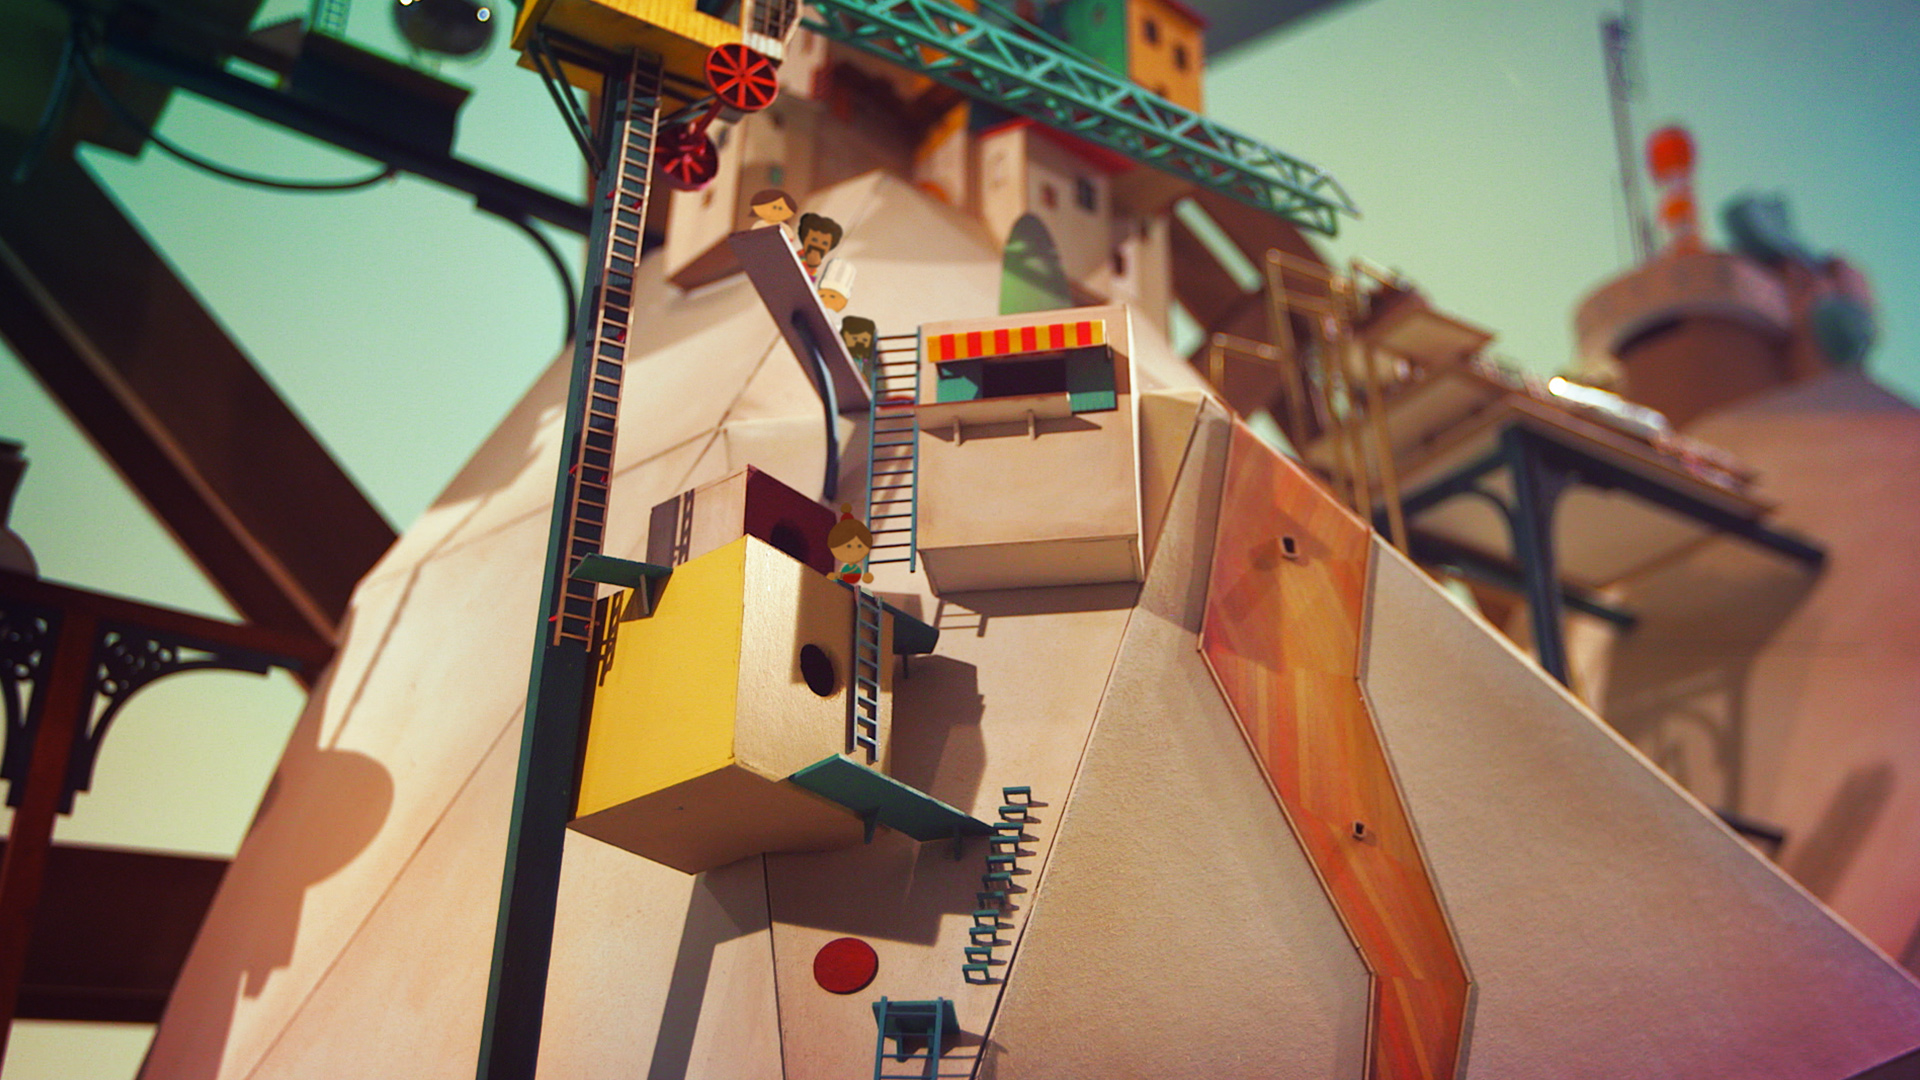 The hand-crafted Lumino City brings a charming adventure to Android